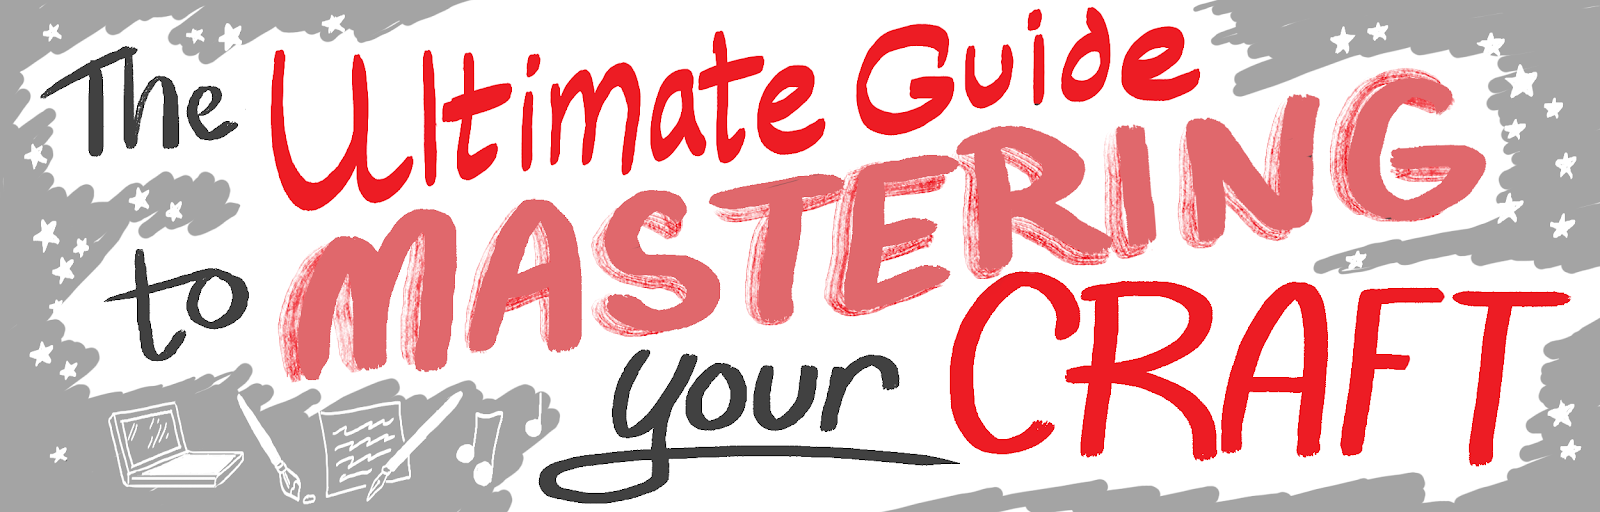 The Ultimate Guide to Mastering Your Craft